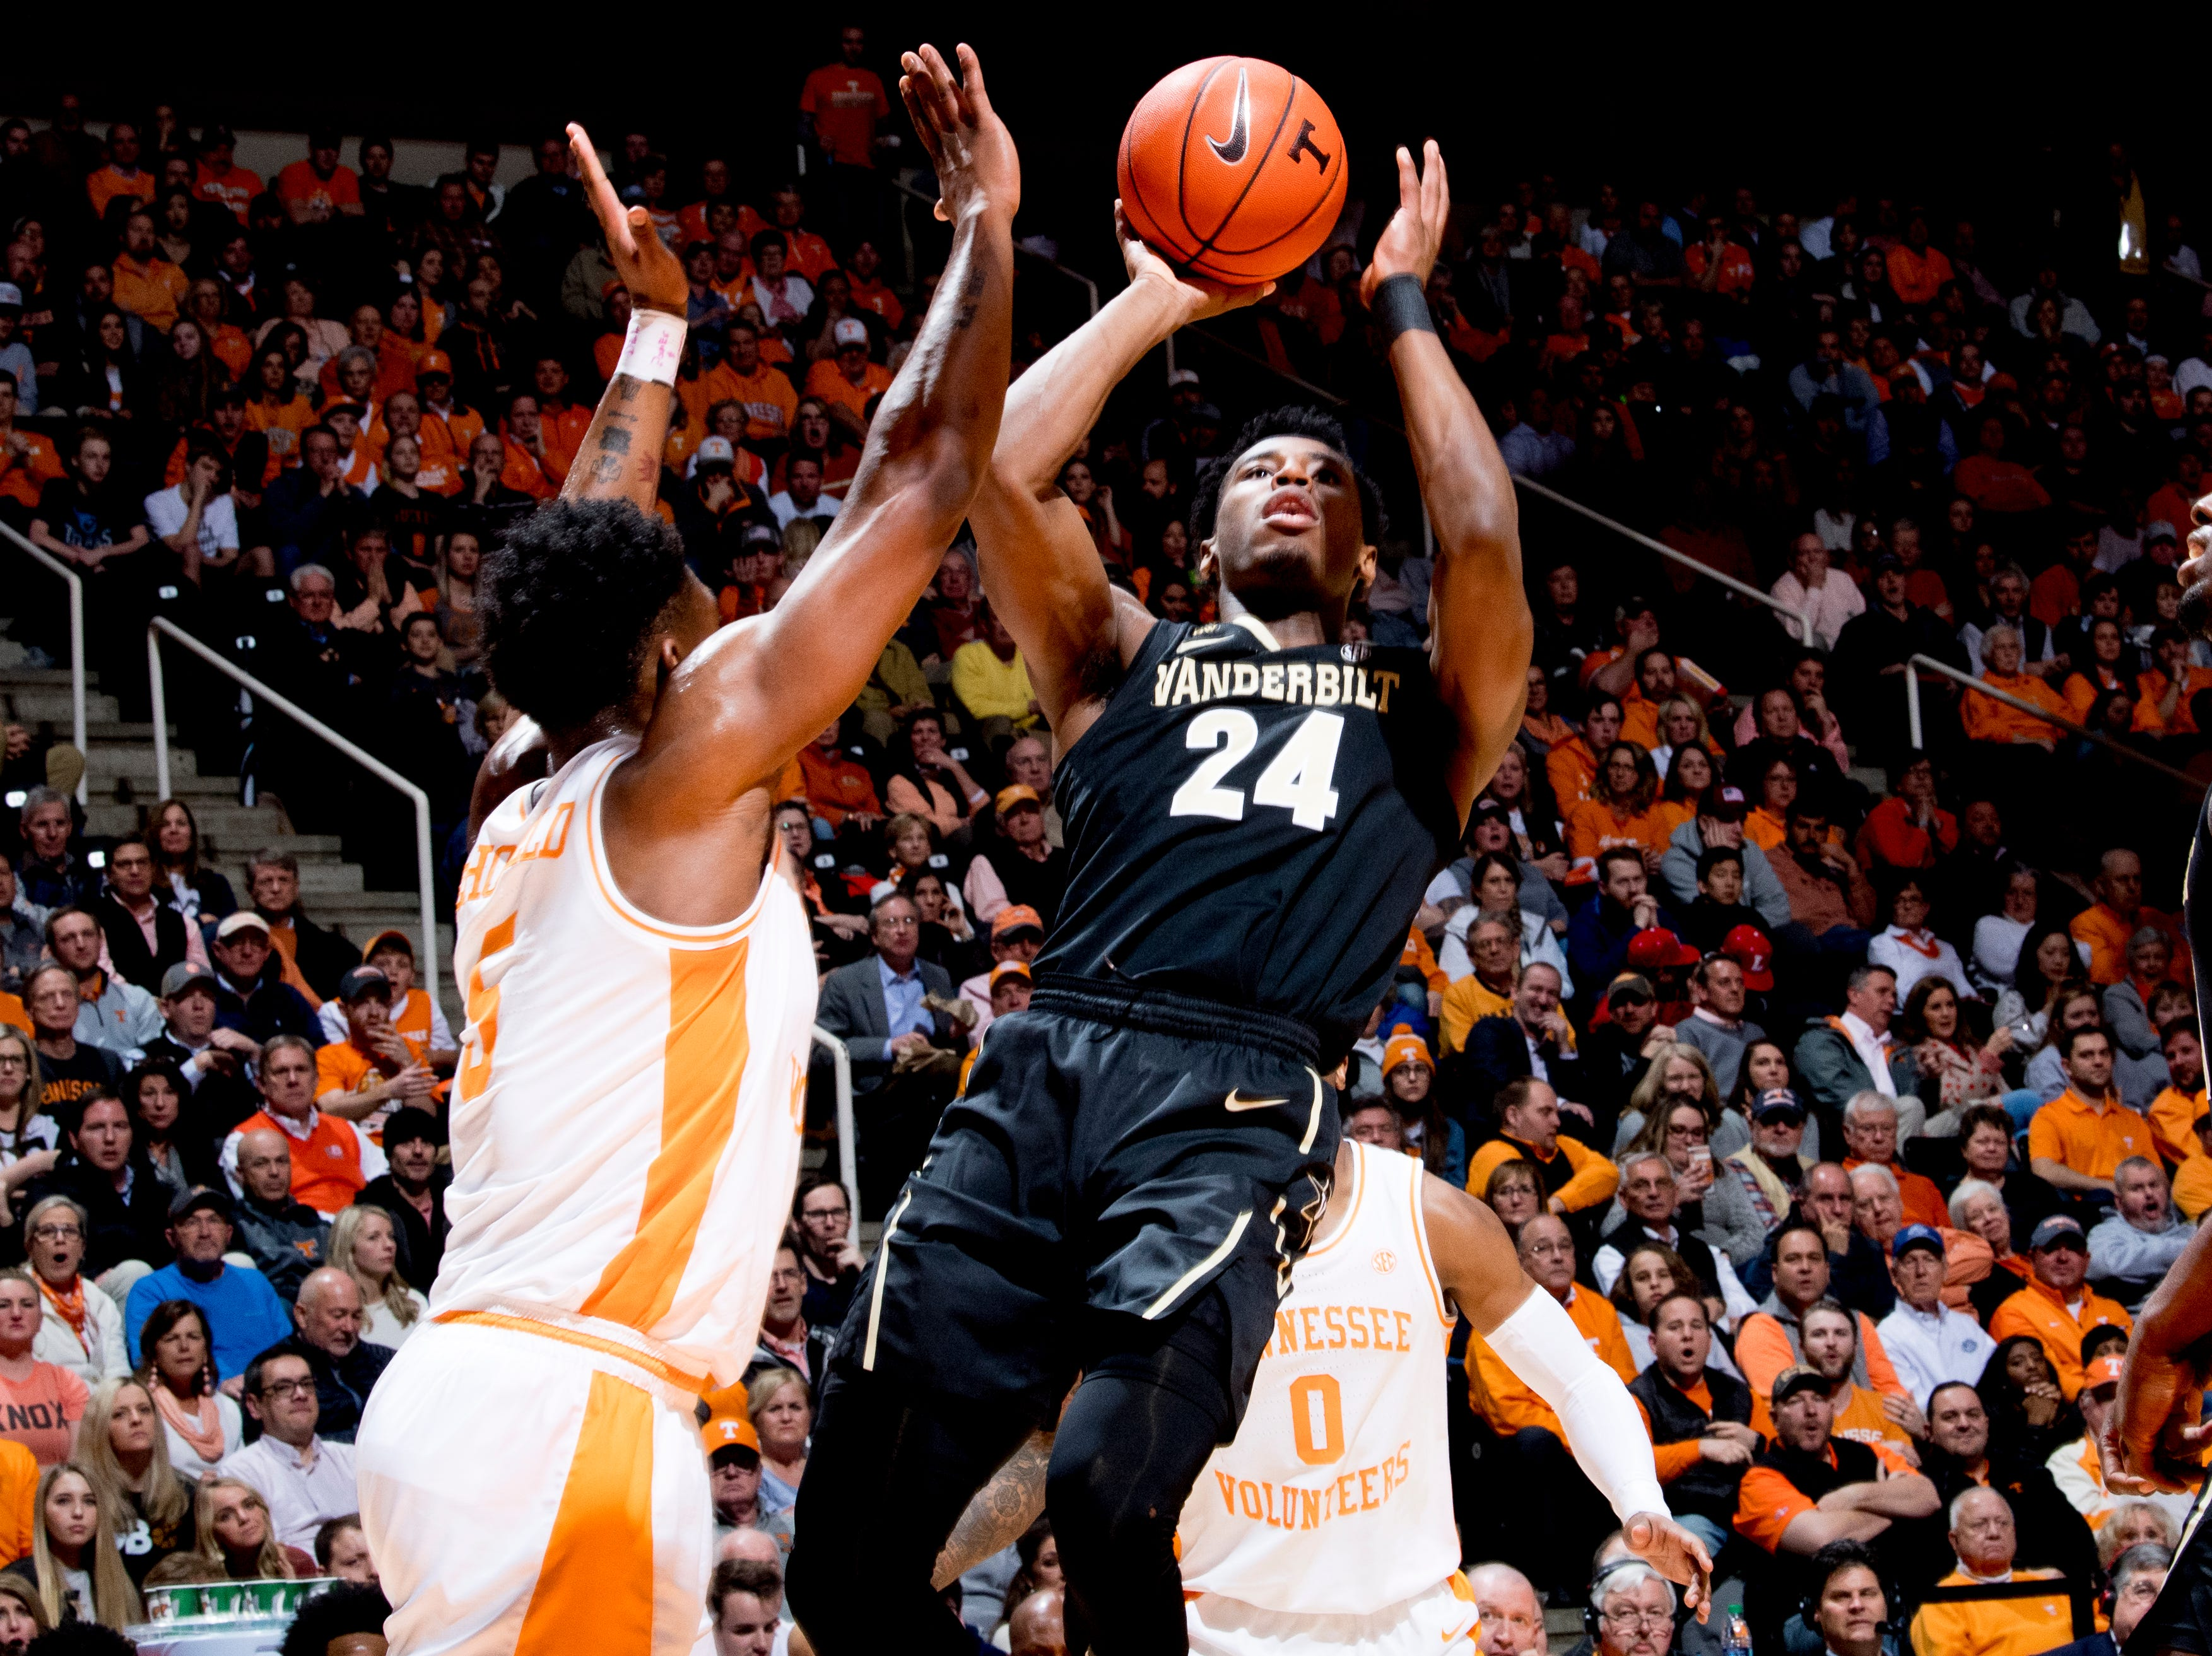 Vanderbilt forward Aaron Nesmith (24) shoots the ball as Tennessee guard Admiral Schofield (5) defends during a game between Tennessee and Vanderbilt at Thompson-Boling Arena in Knoxville, Tennessee on Tuesday, February 19, 2019.